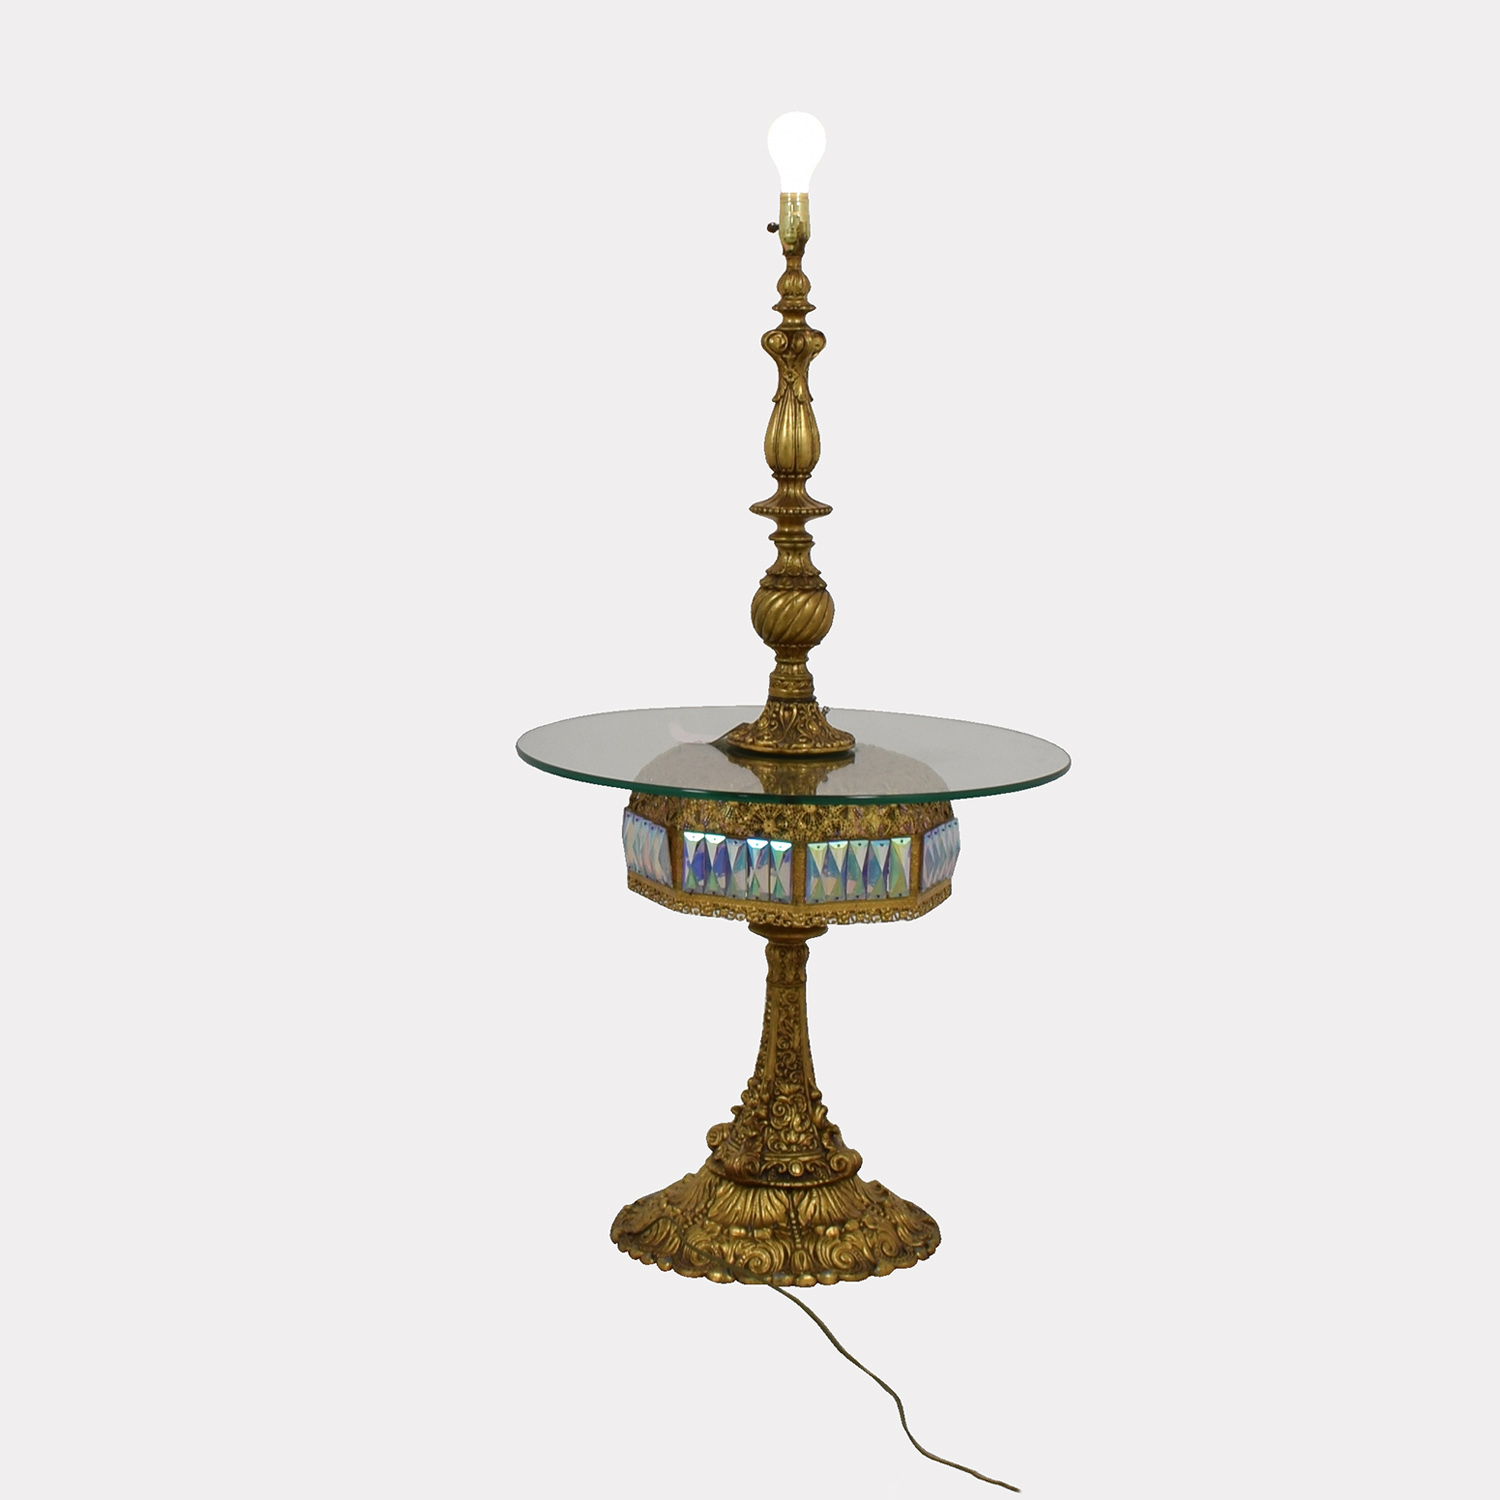 buy Vintage Gold Table Lamp online